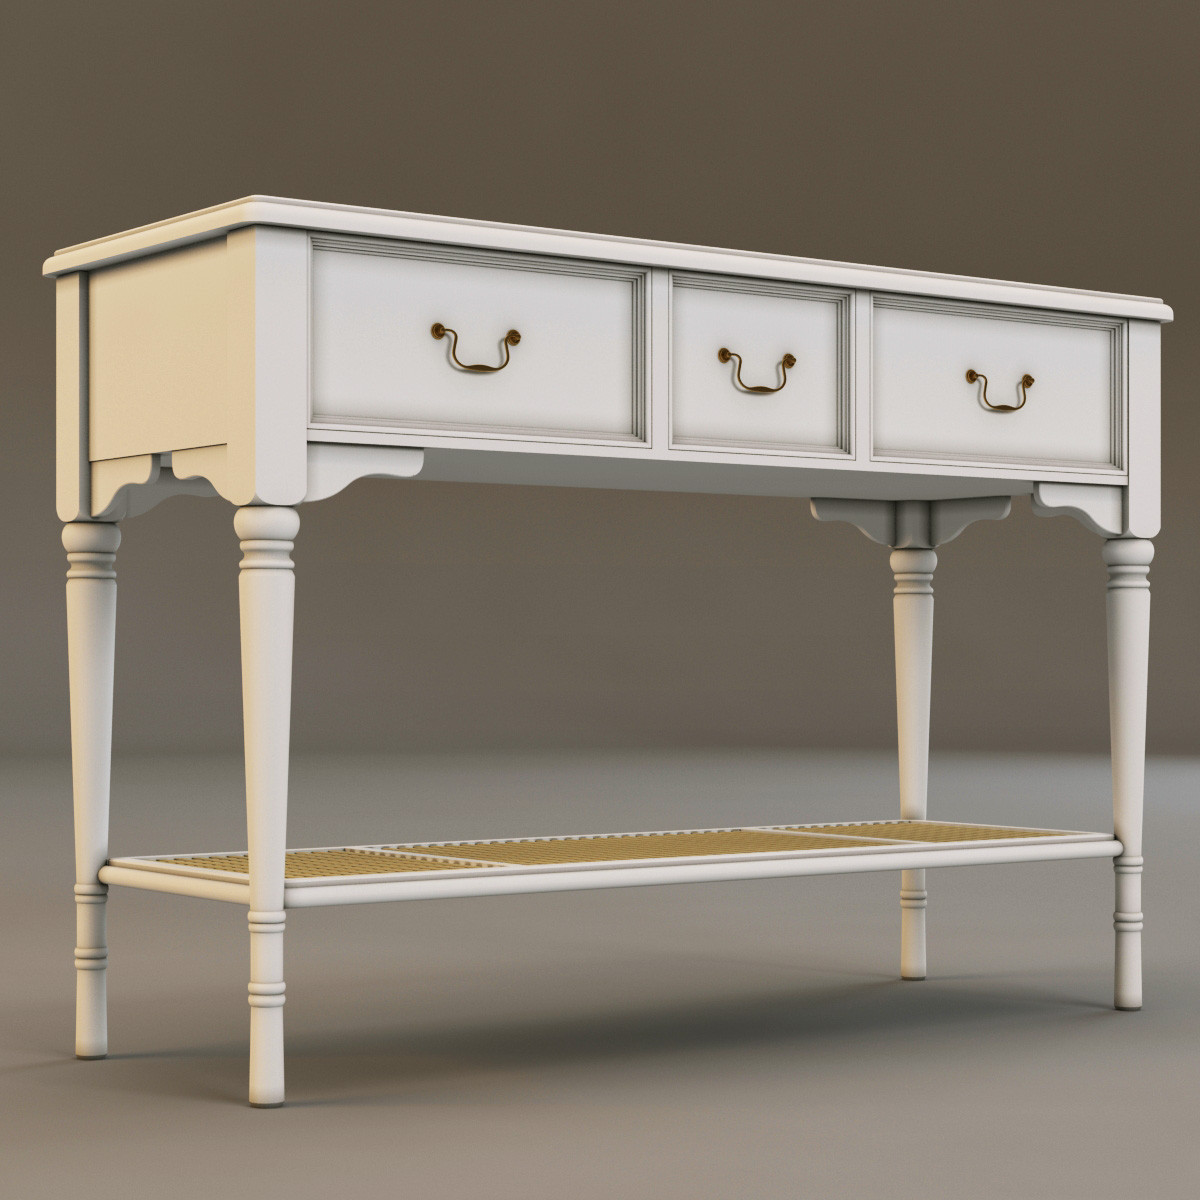 Laura Ashley console3.jpg